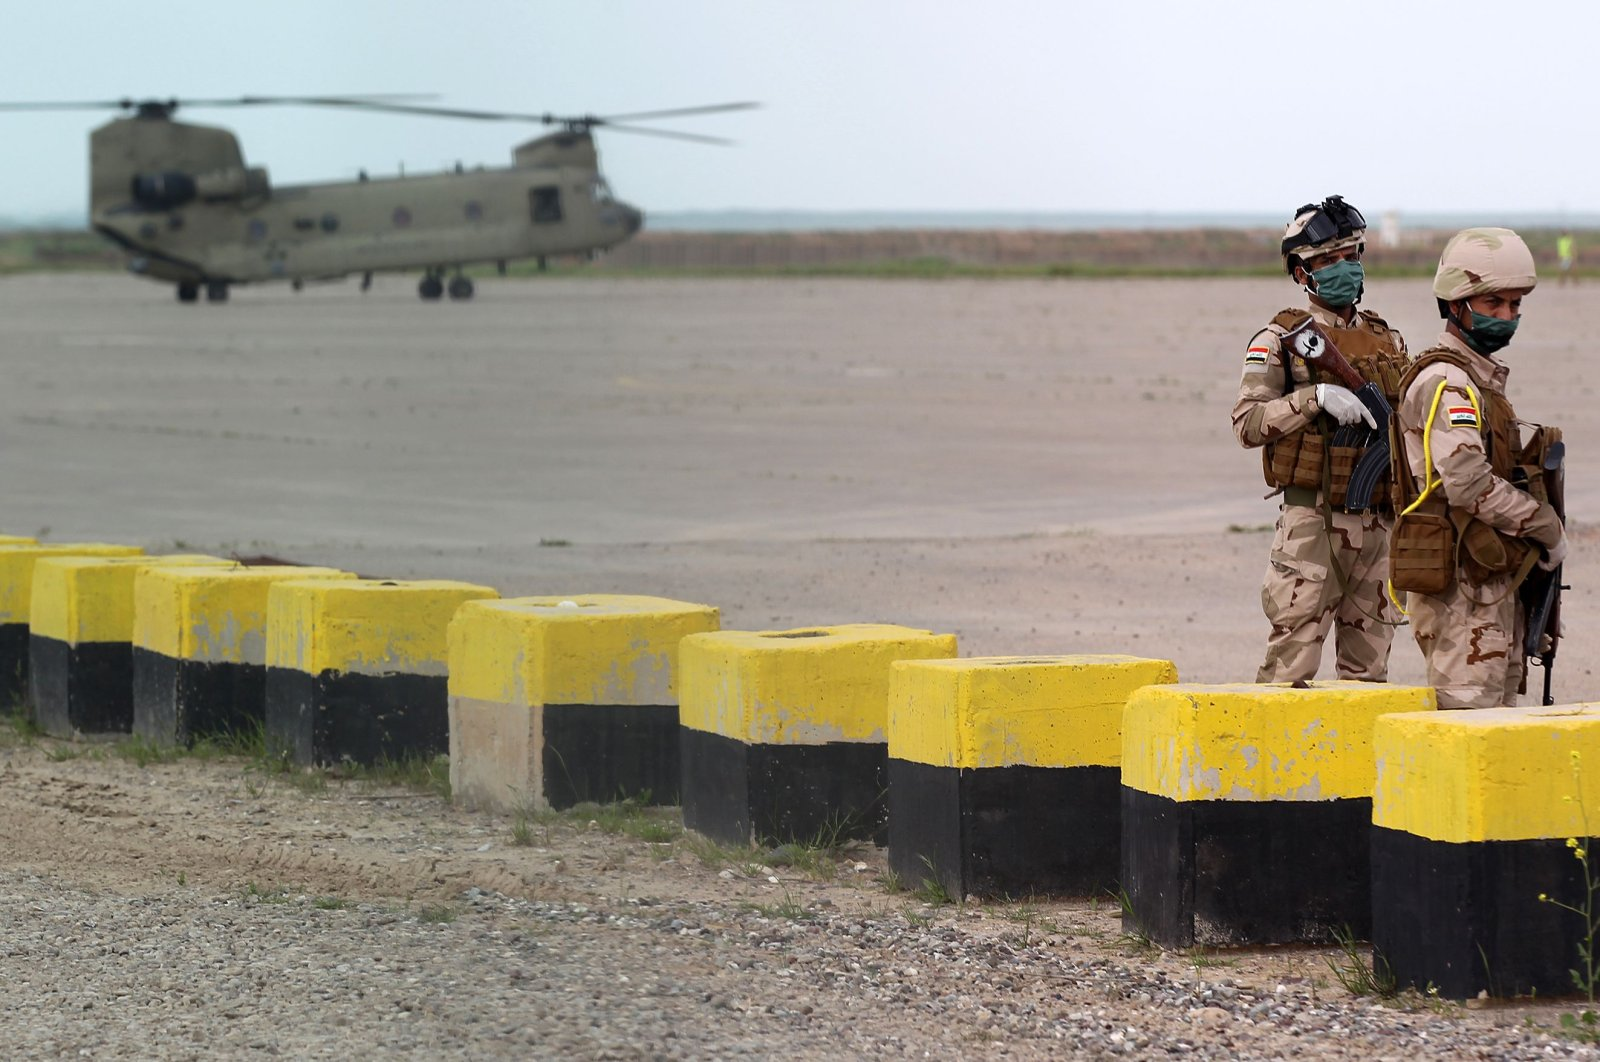 Iraqi soldiers stand guard in front of a U.S. military helicopter at the Qayyarah air base, Thursday, March 26, 2020. (AFP Photo)